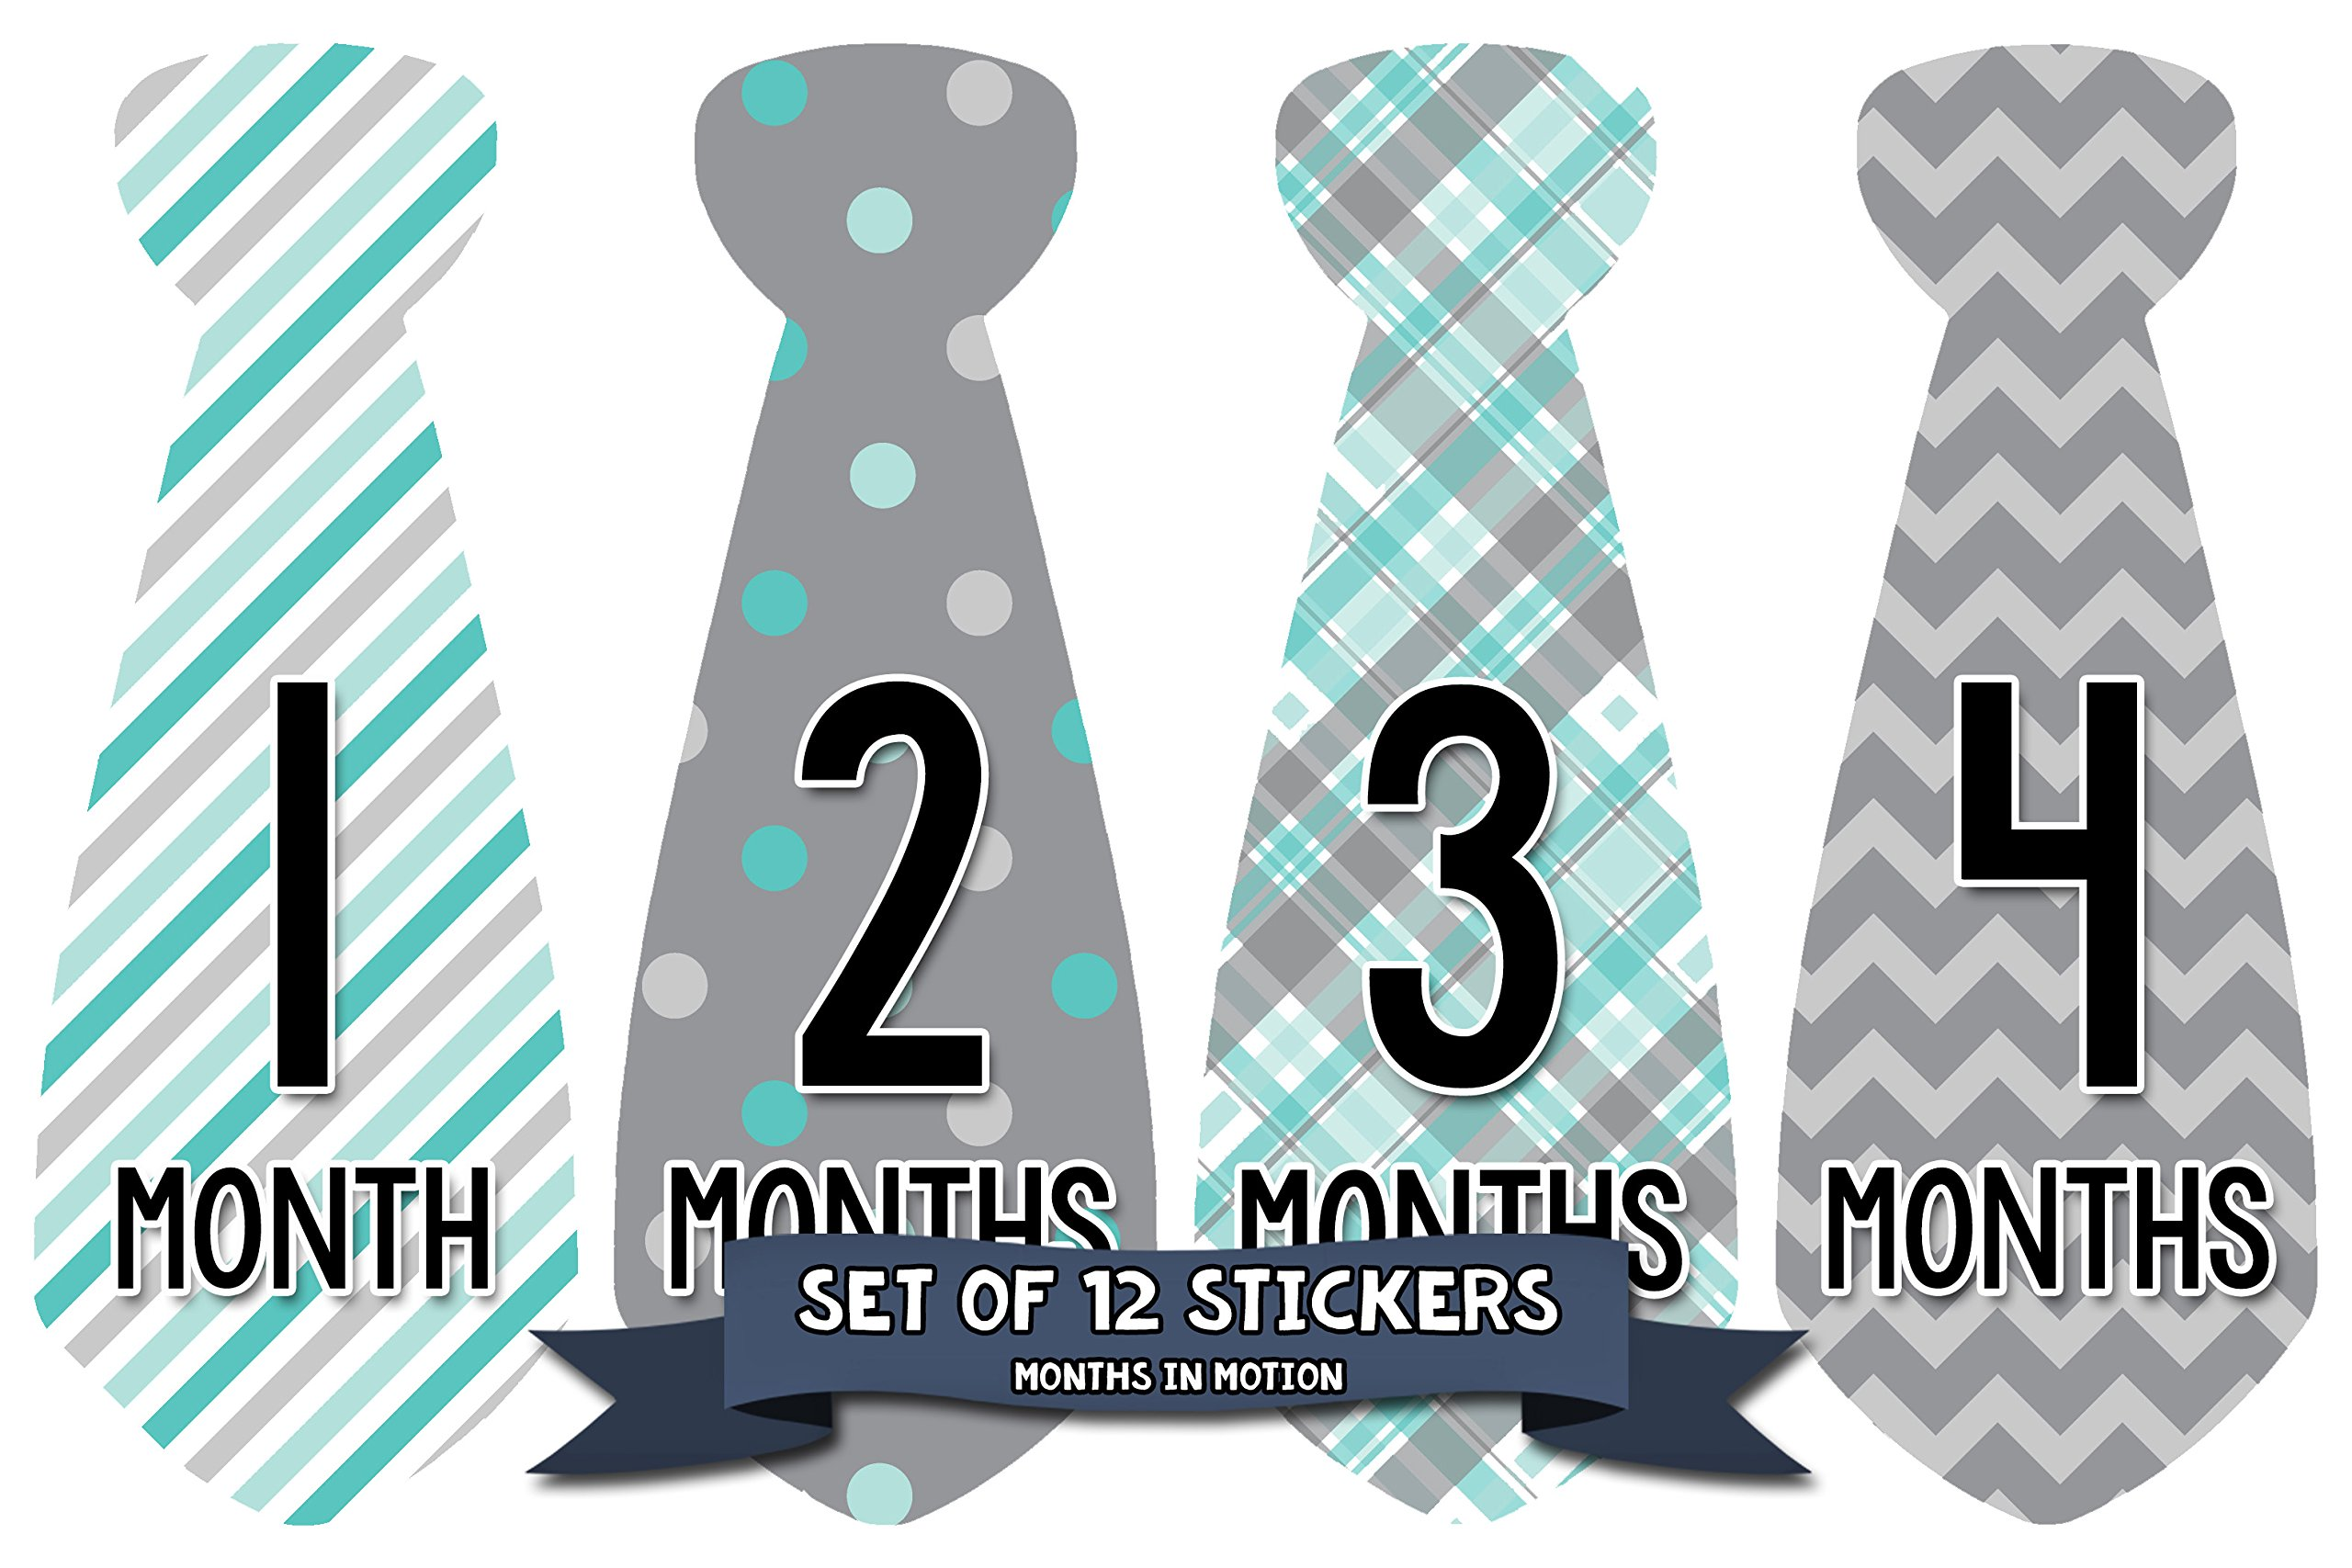 Months in Motion 712 Monthly Baby Stickers Necktie Tie Baby Boy Months 1-12 by Months In Motion